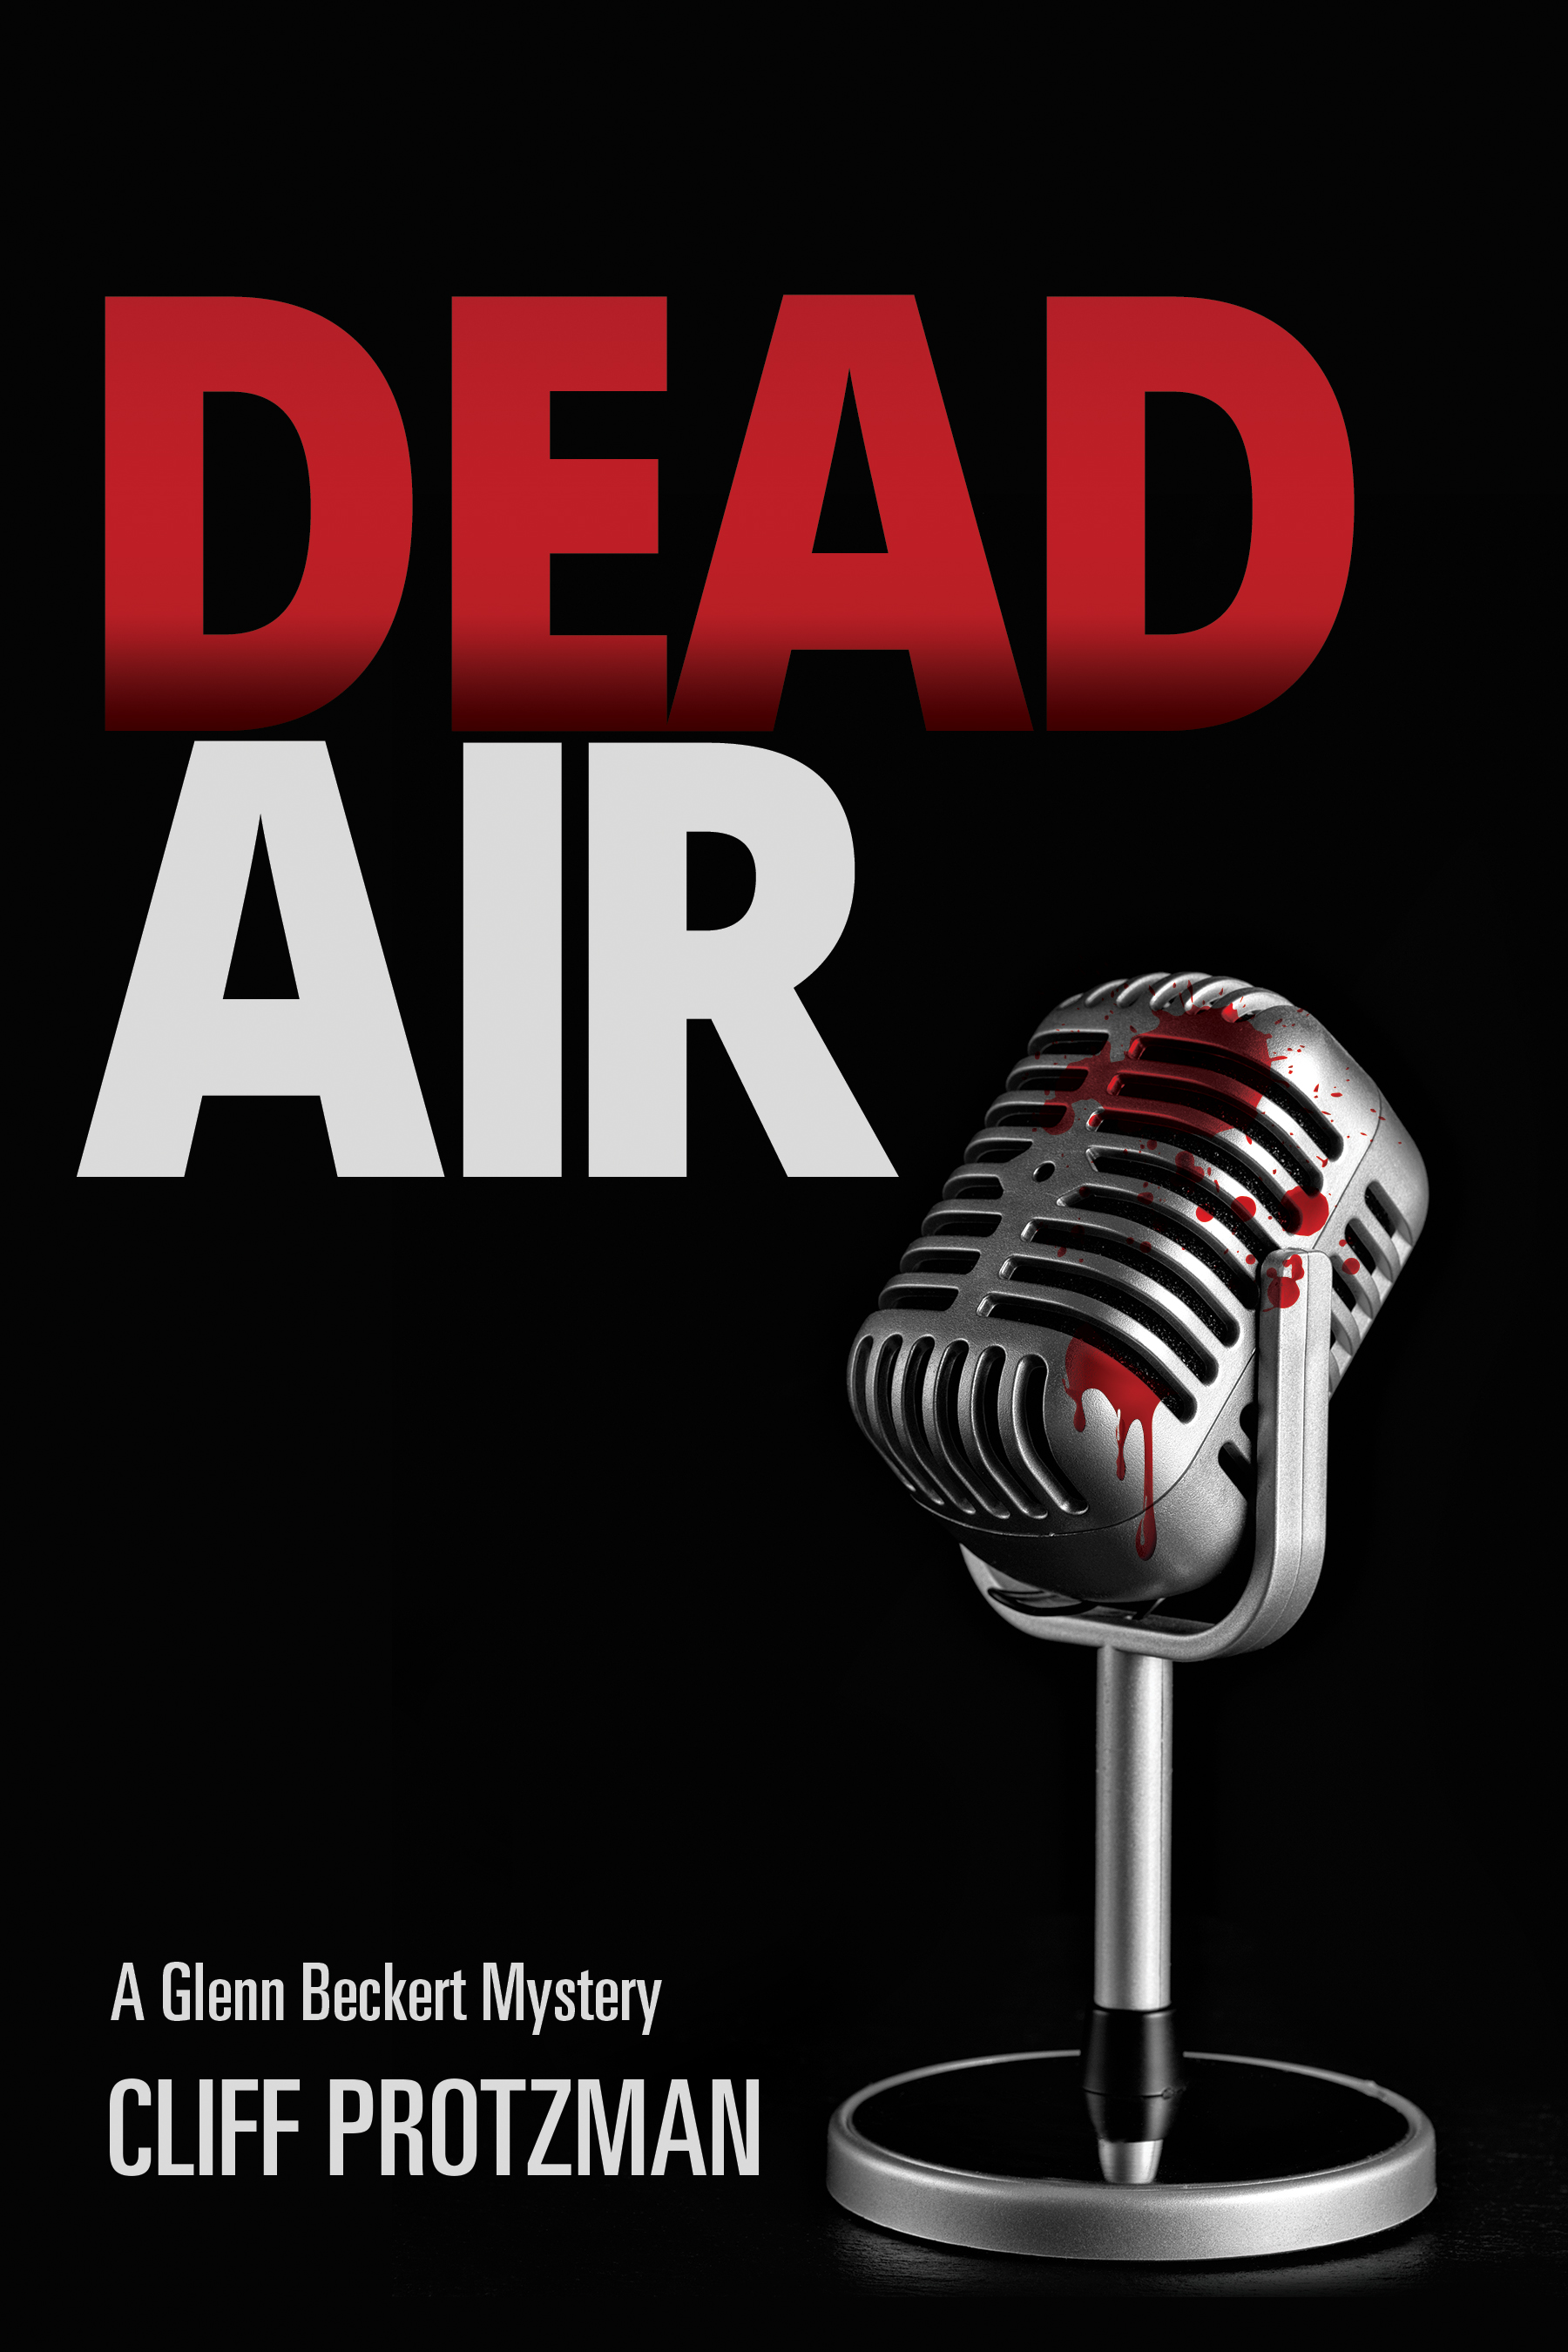 Dead Air by Cliff Protzman